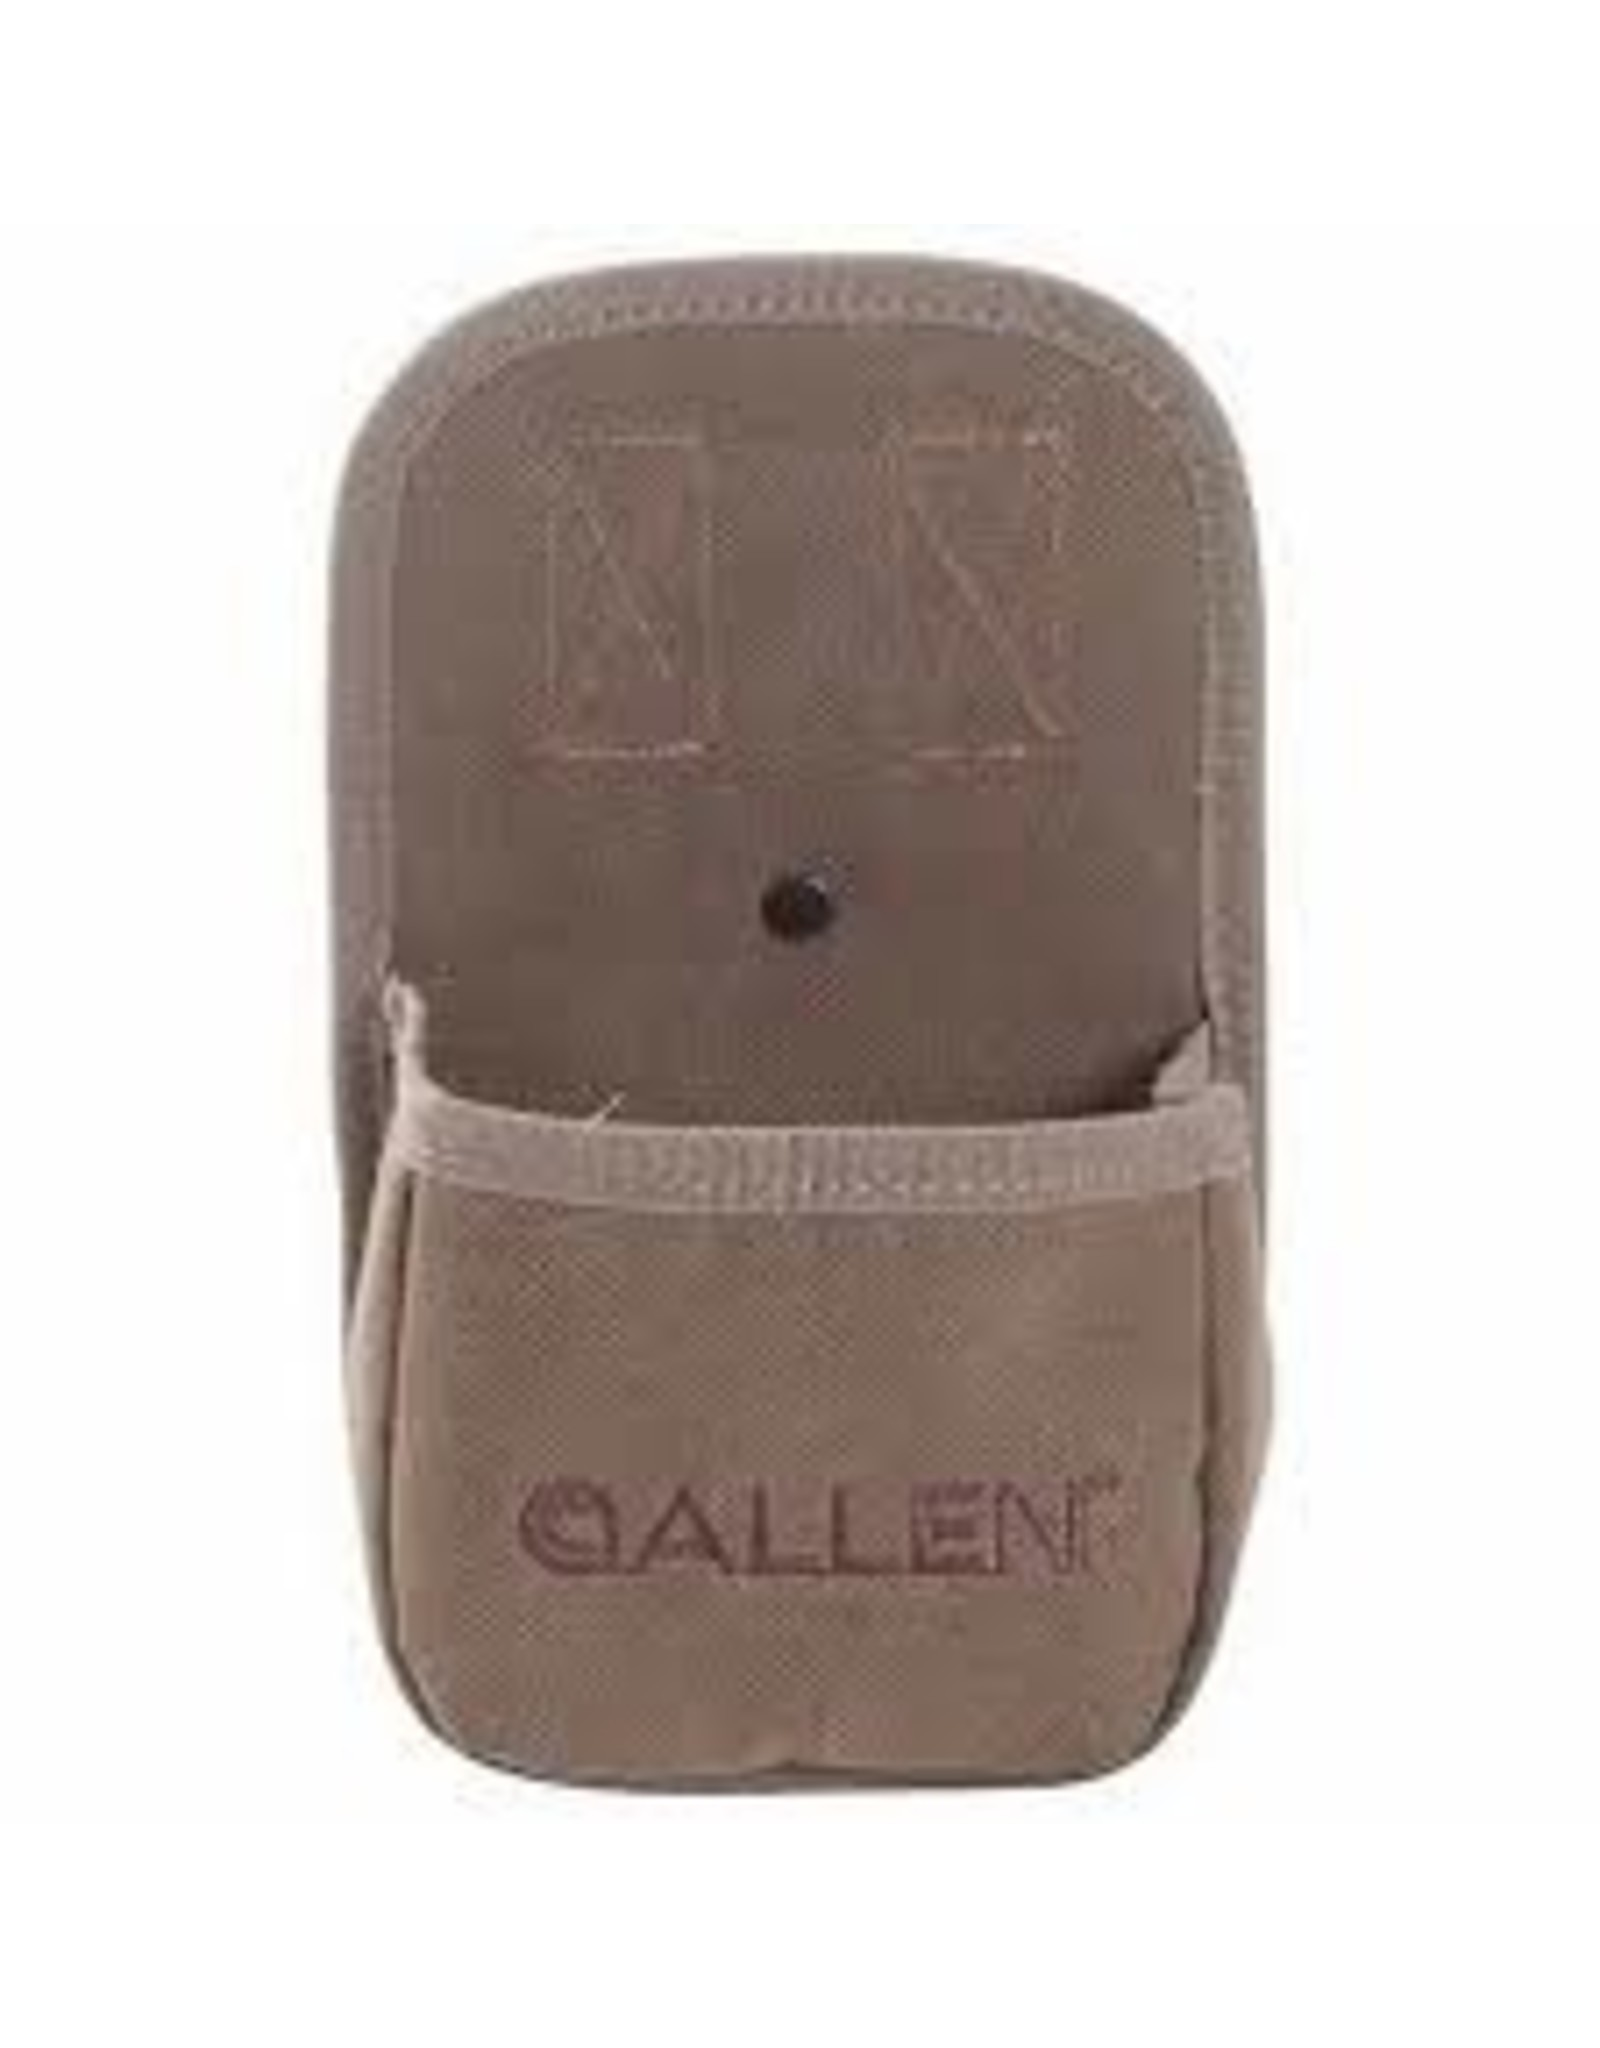 Allen Allen Shell Carrier